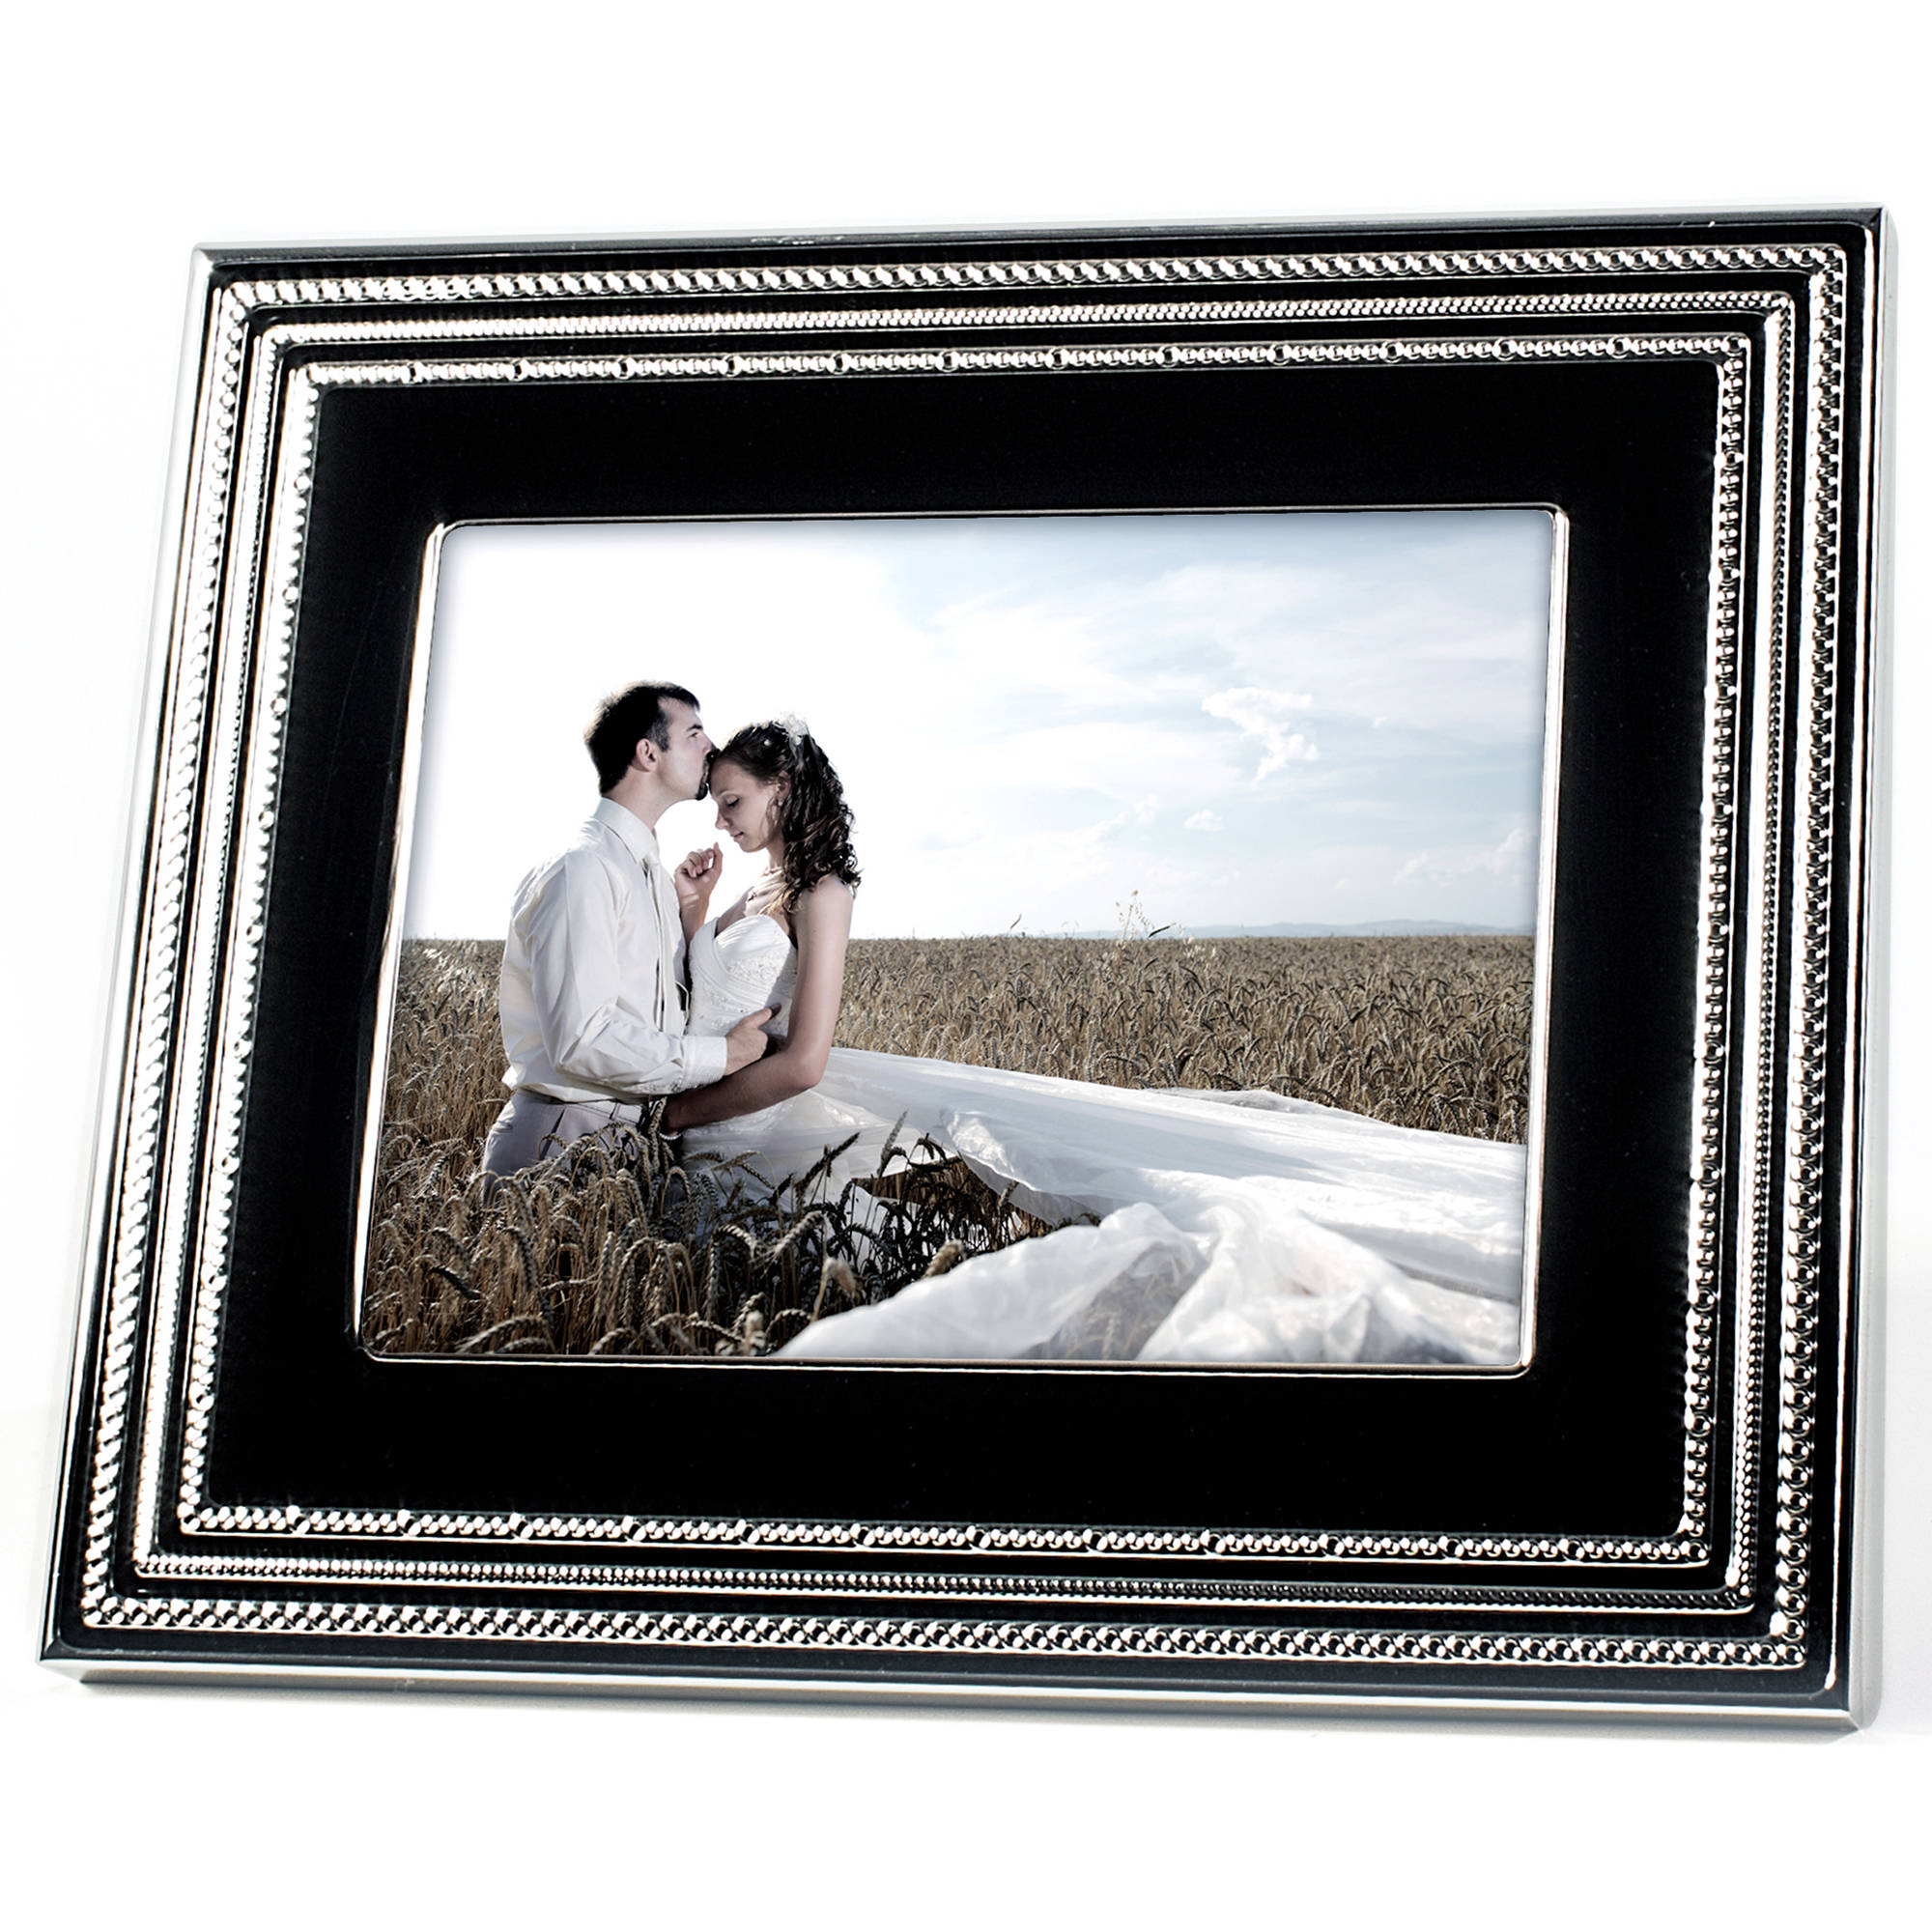 Mdi 8 Vera Wang Wedgwood Digital Photo Frame Md8002 Bh